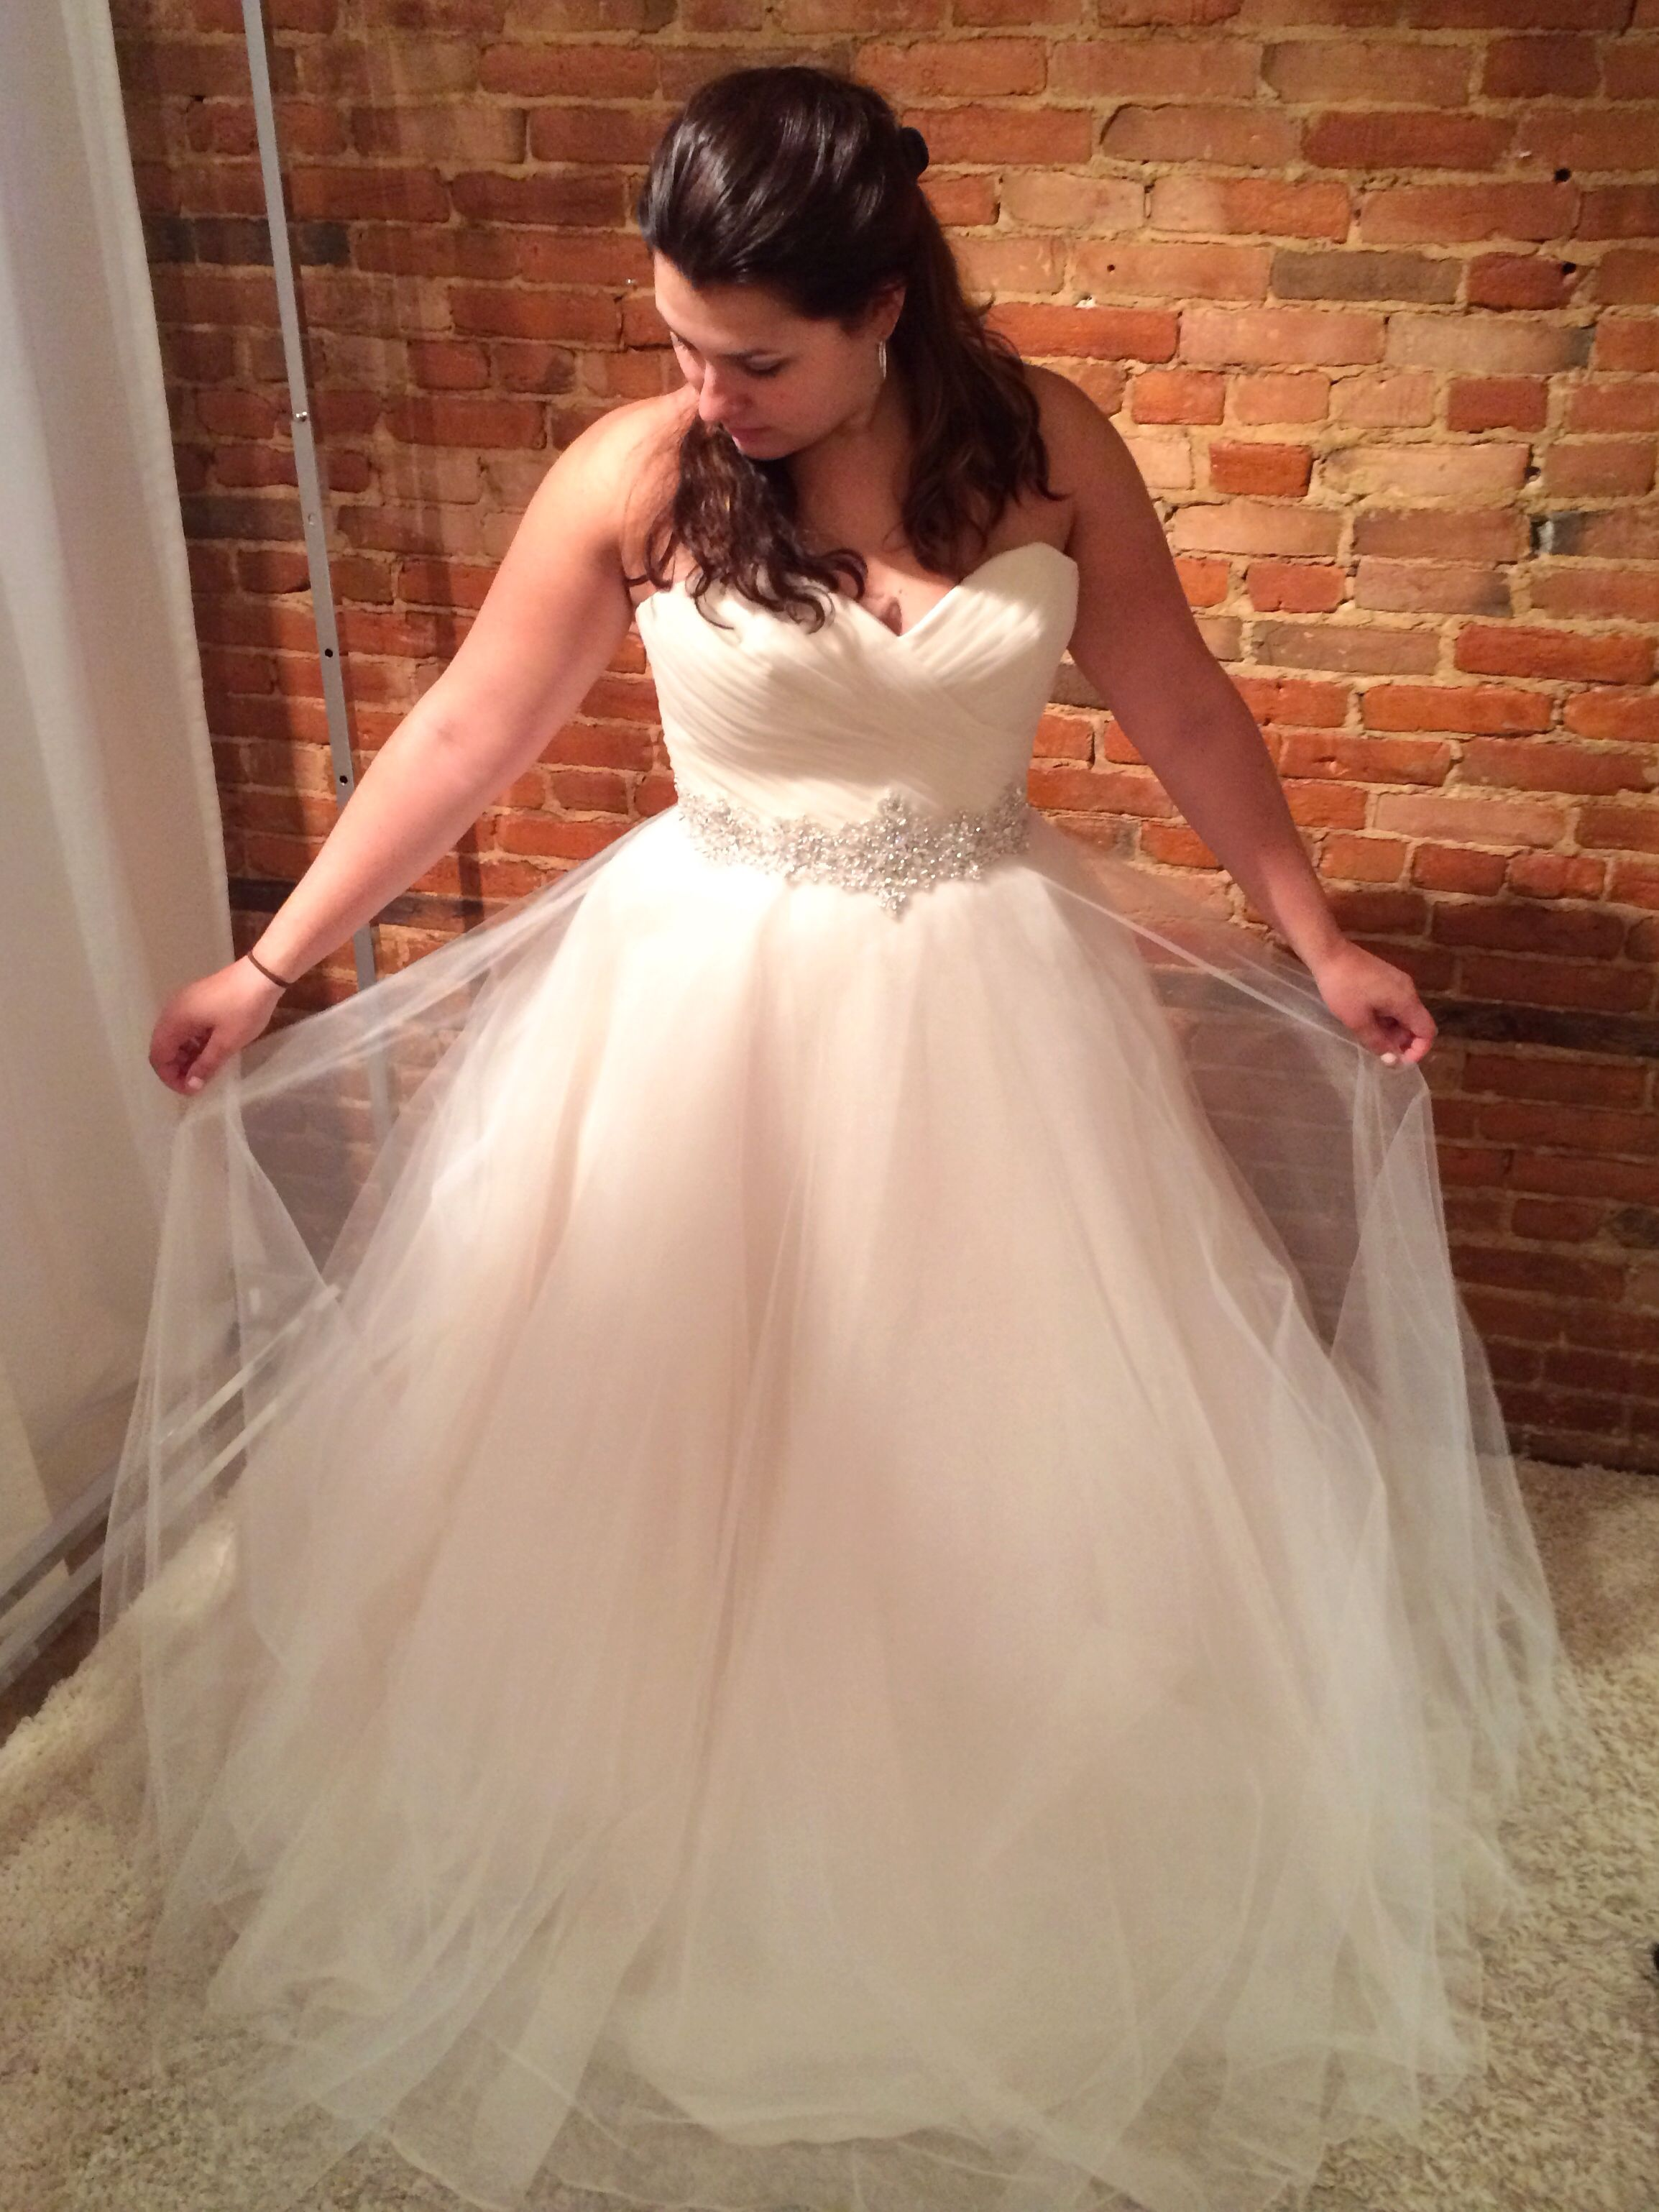 Used wedding dresses in michigan  New morileewedding gown at The Dress Shop Howell MICHIGAN wedding